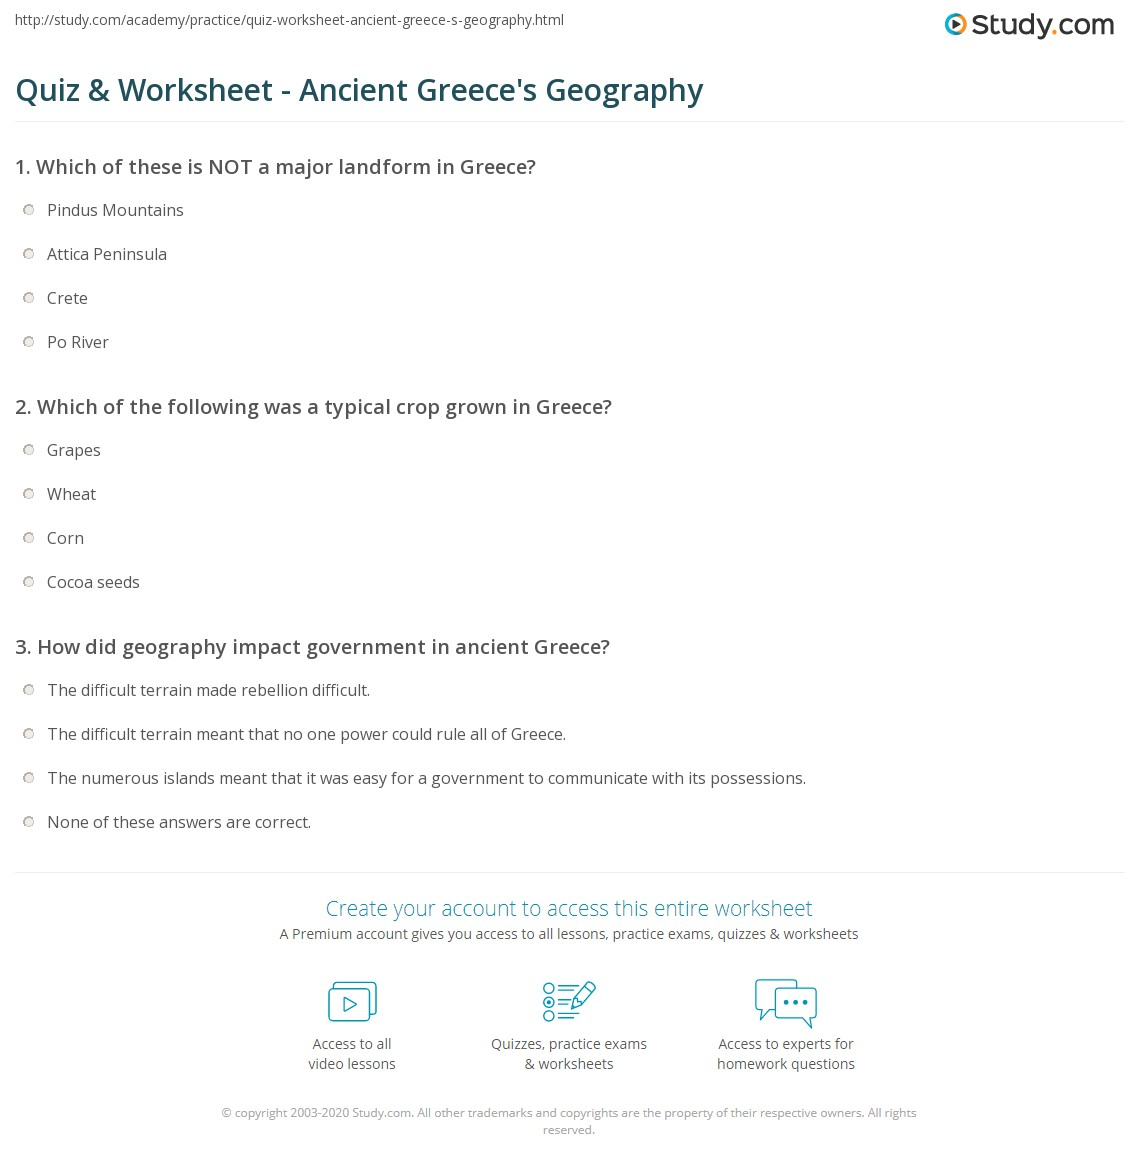 Quiz & Worksheet - Ancient Greece's Geography | Study.com